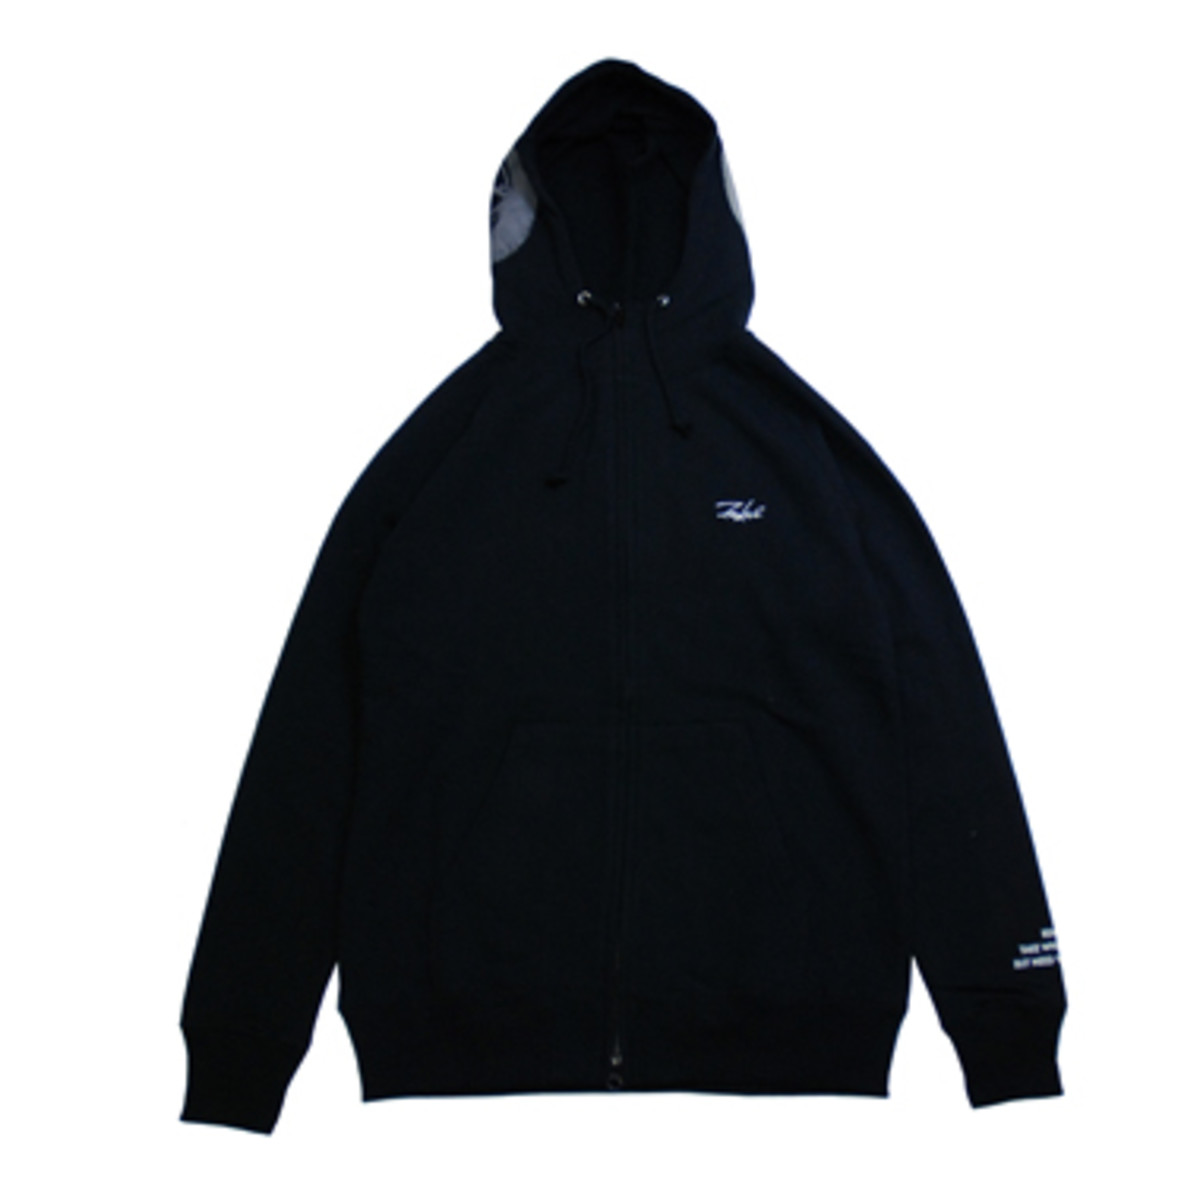 atomic-zip-hoody